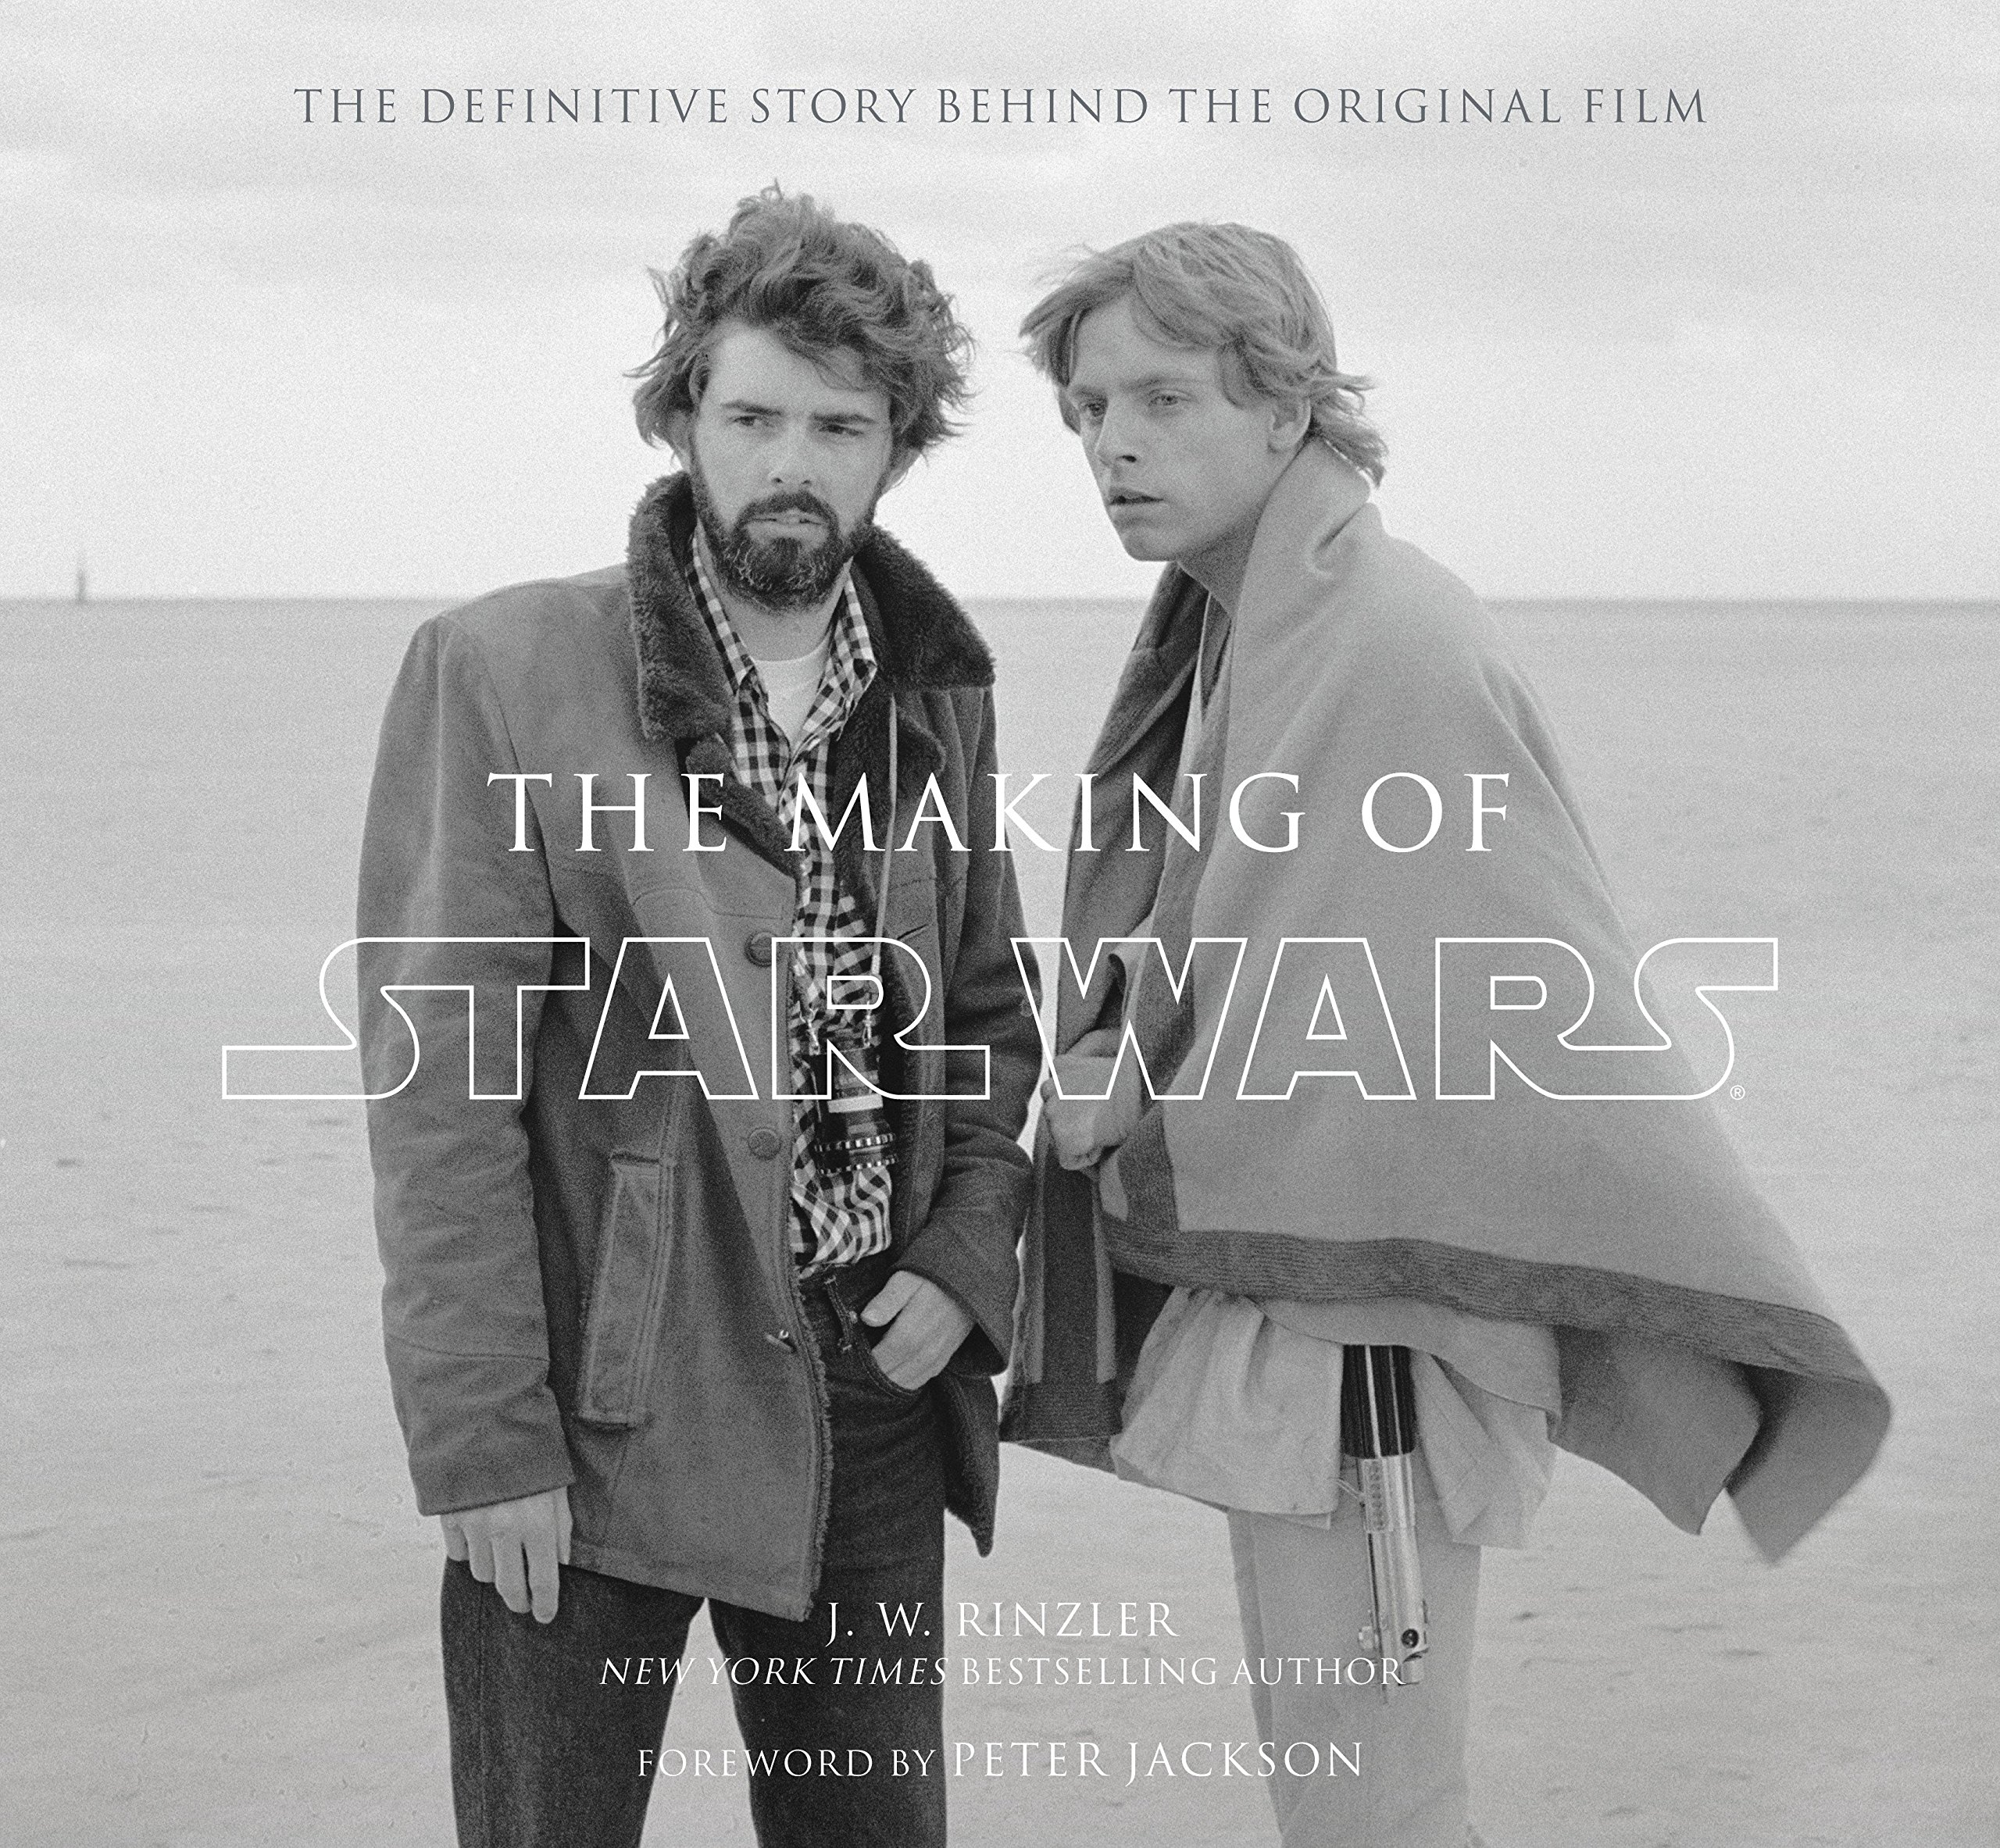 The Making of Star Wars: The Definitive Story Behind the Original Film by Del Rey